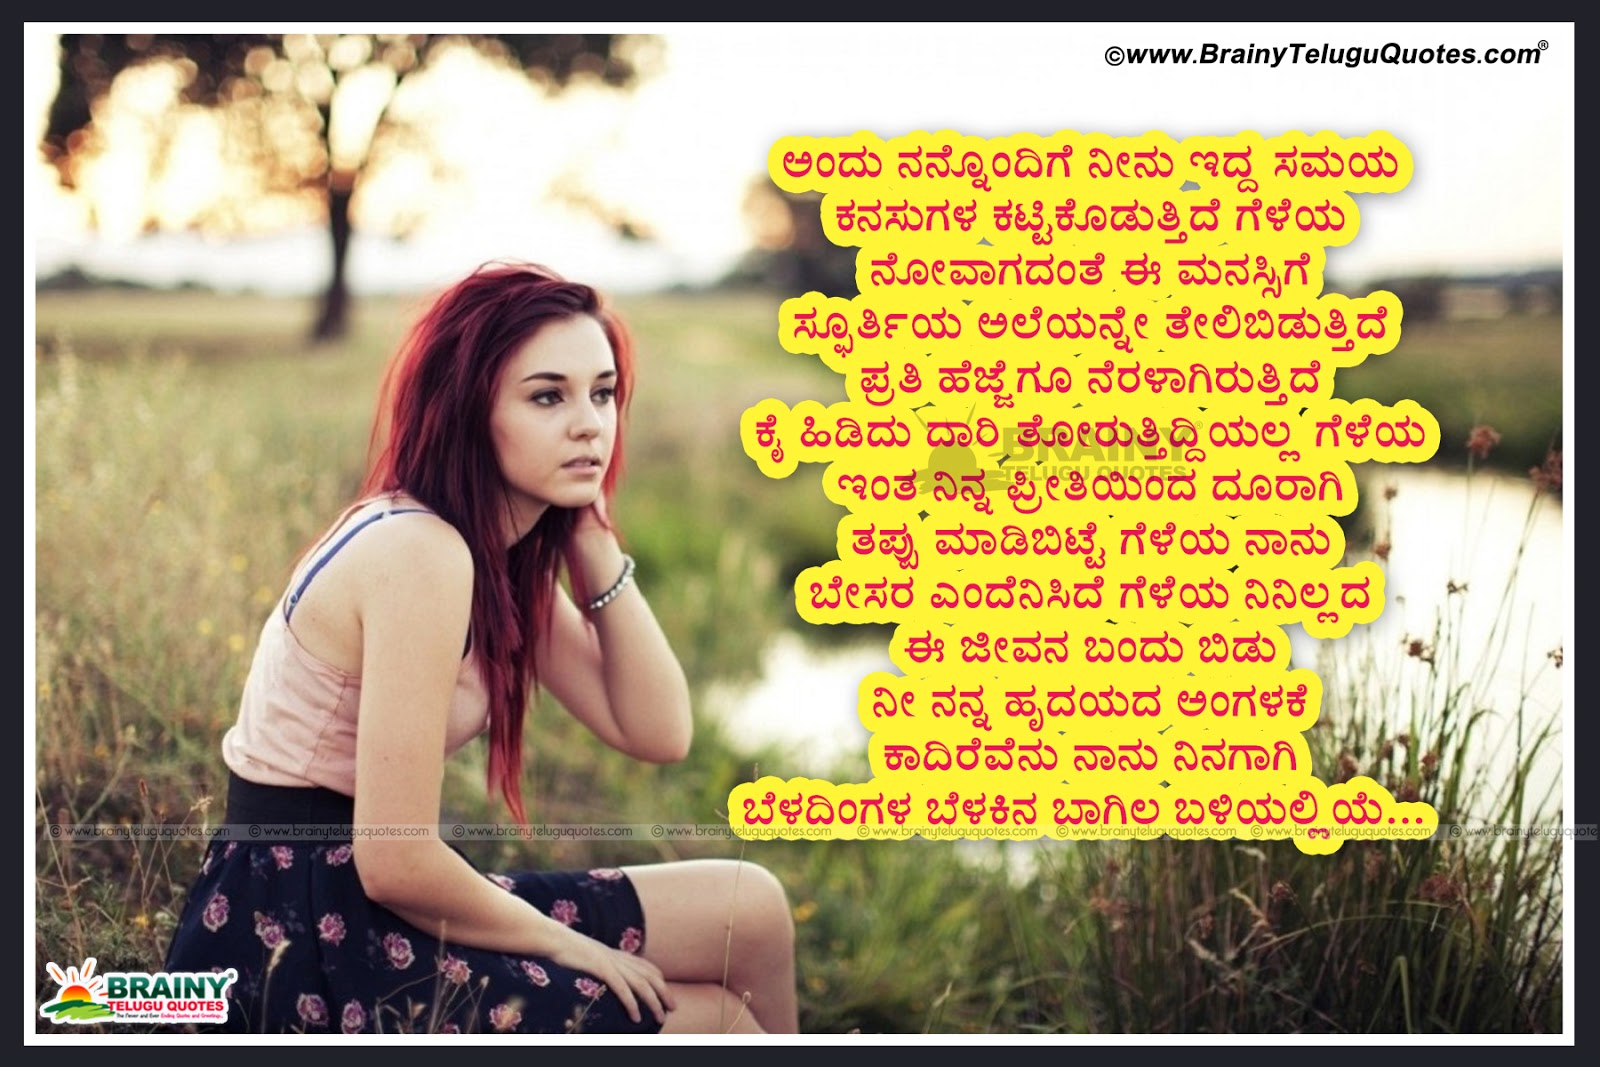 Sad Feeling Kannada Images: I Miss You Kannada Quotes Kavanagalu With Alone Girl Hd